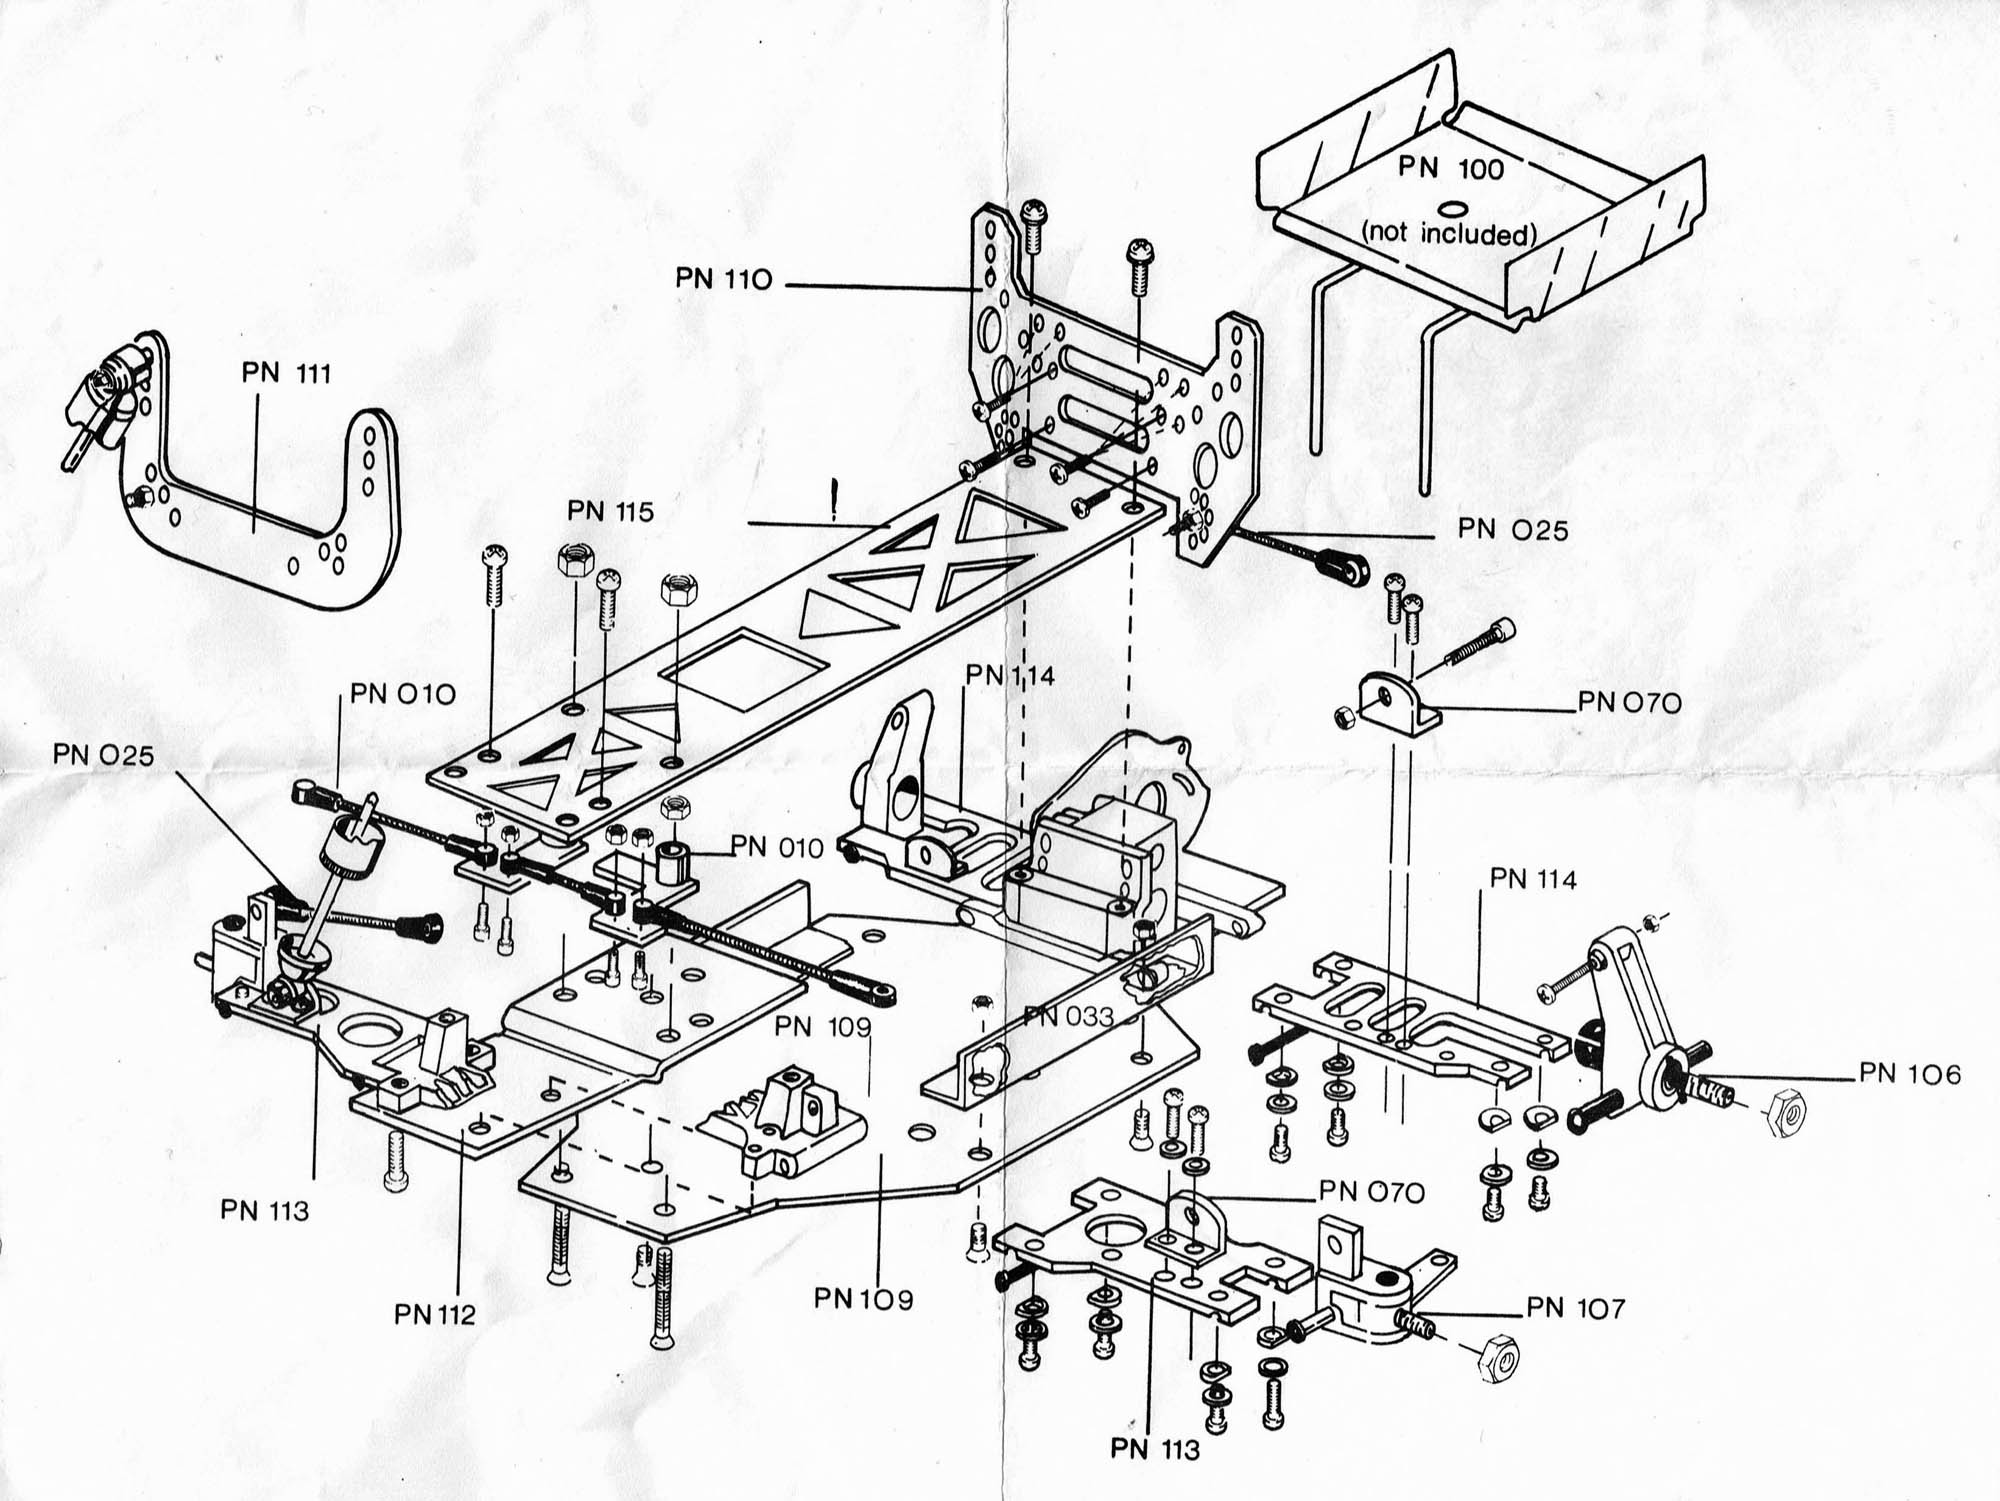 Directory Listing of Manuals/Hot Trick/ (Vintage RC car